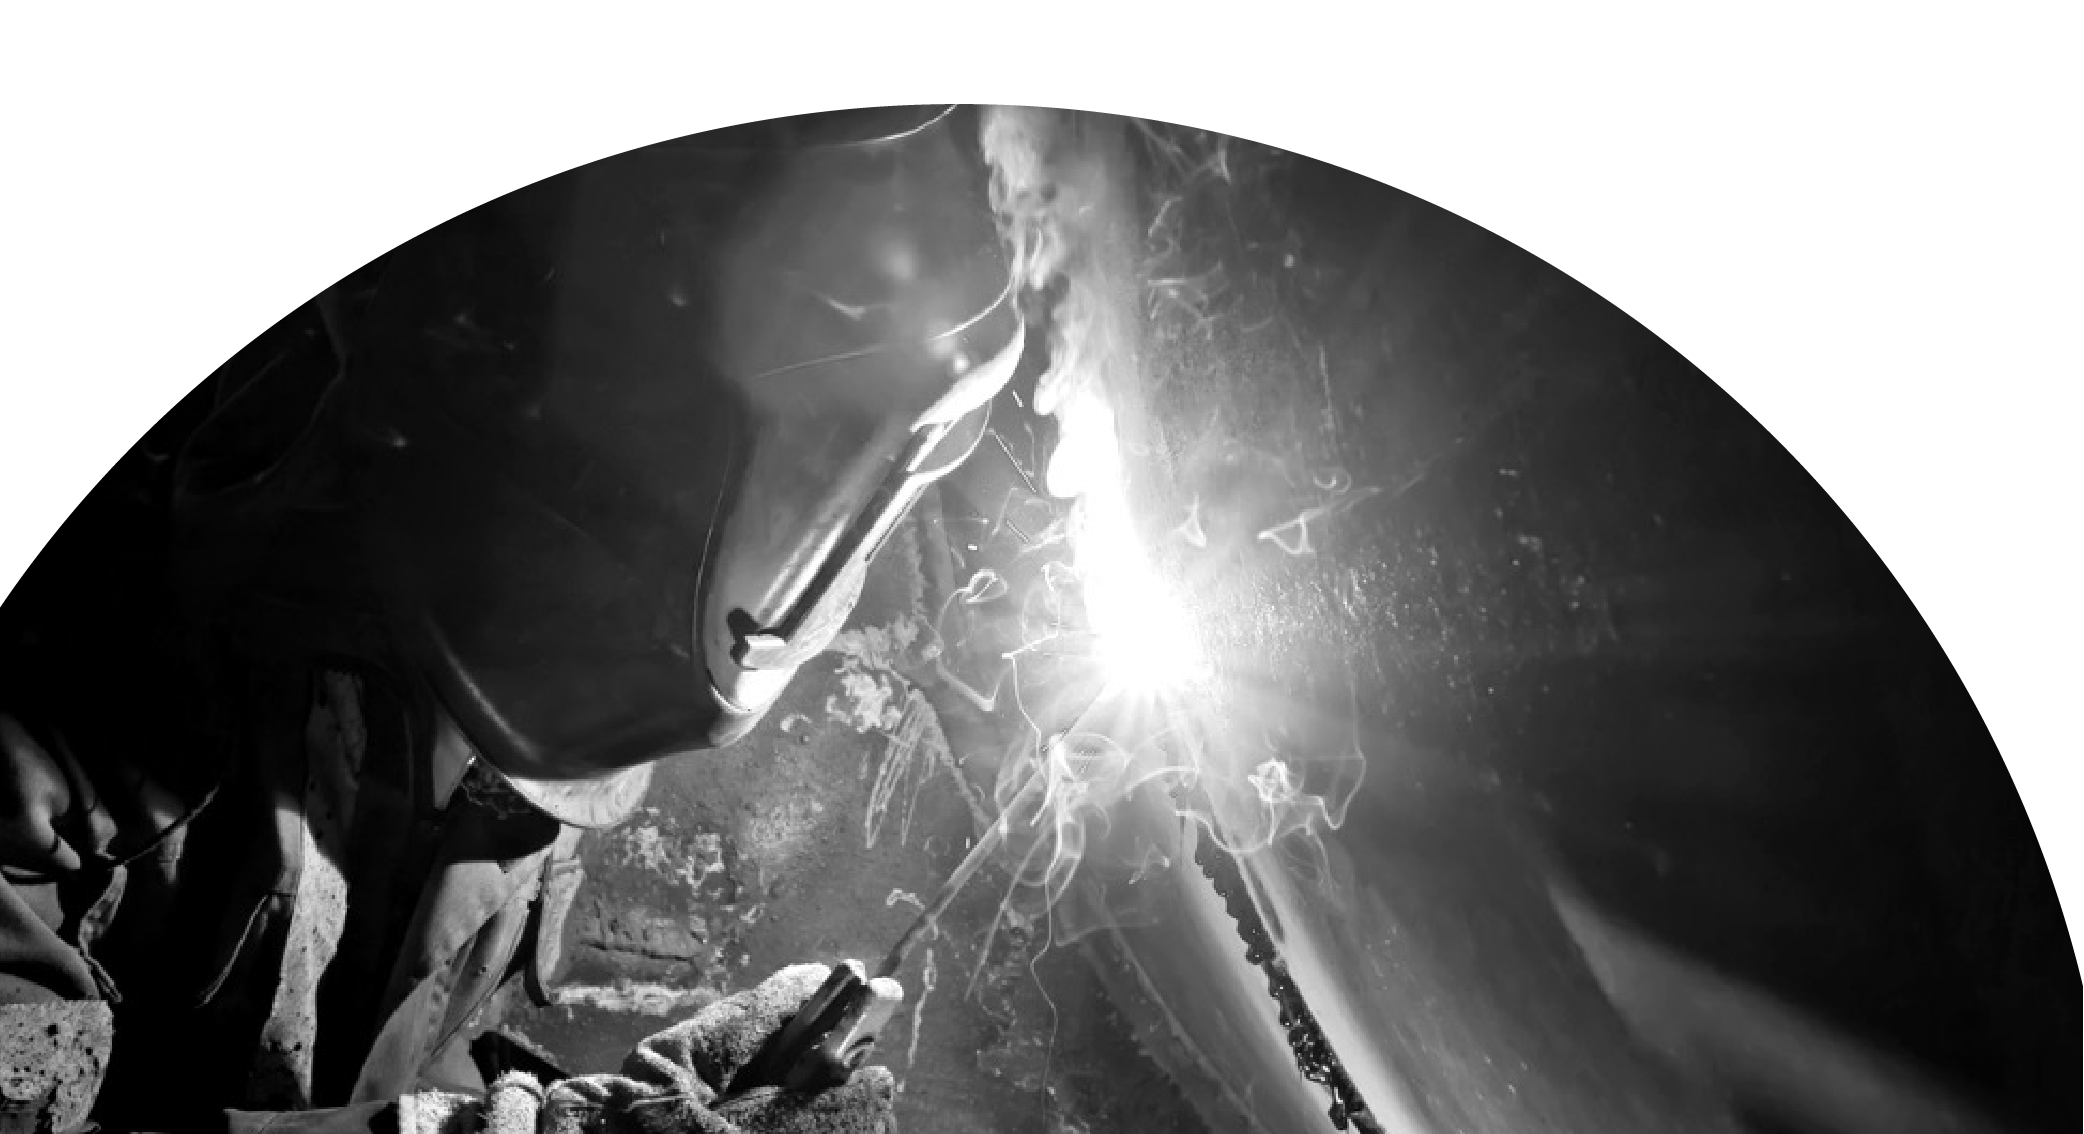 Southern Heat Exchanger fires up its financial and job costing processes